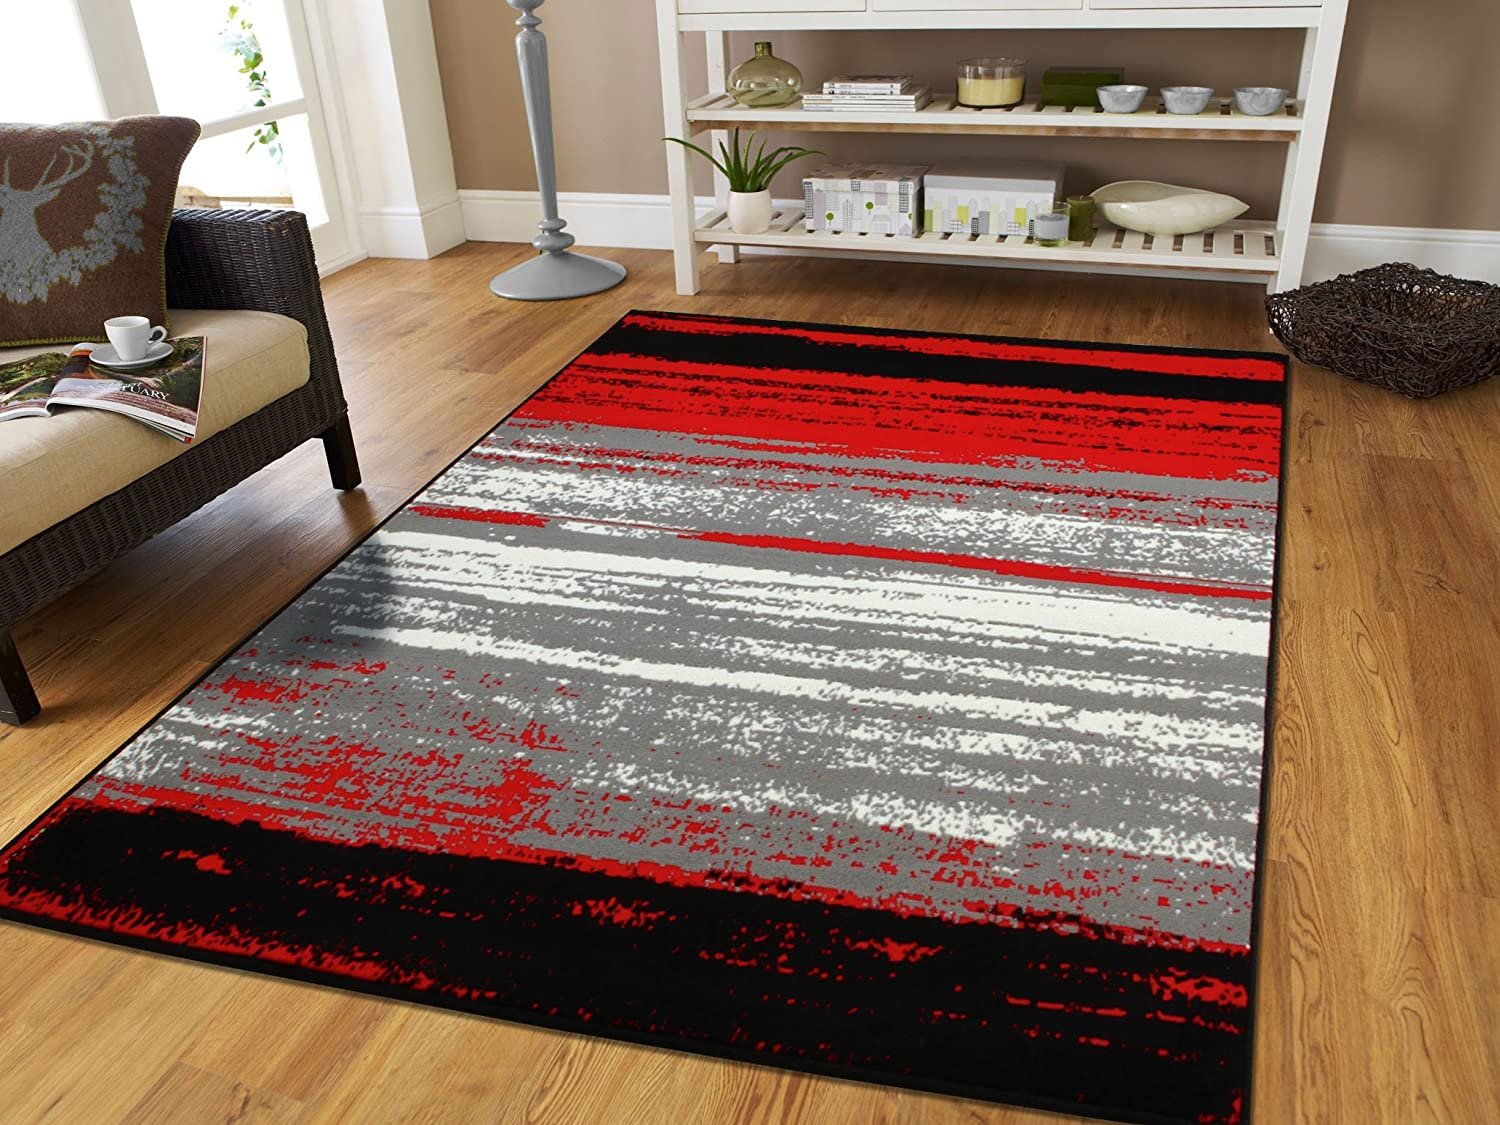 big area rugs for living room. Amazon com  Large Grey Modern Rugs For Living Room 8x10 Abstract Area Office and Kitchen Clearance Red Black Ivory Cheap Rug Sets